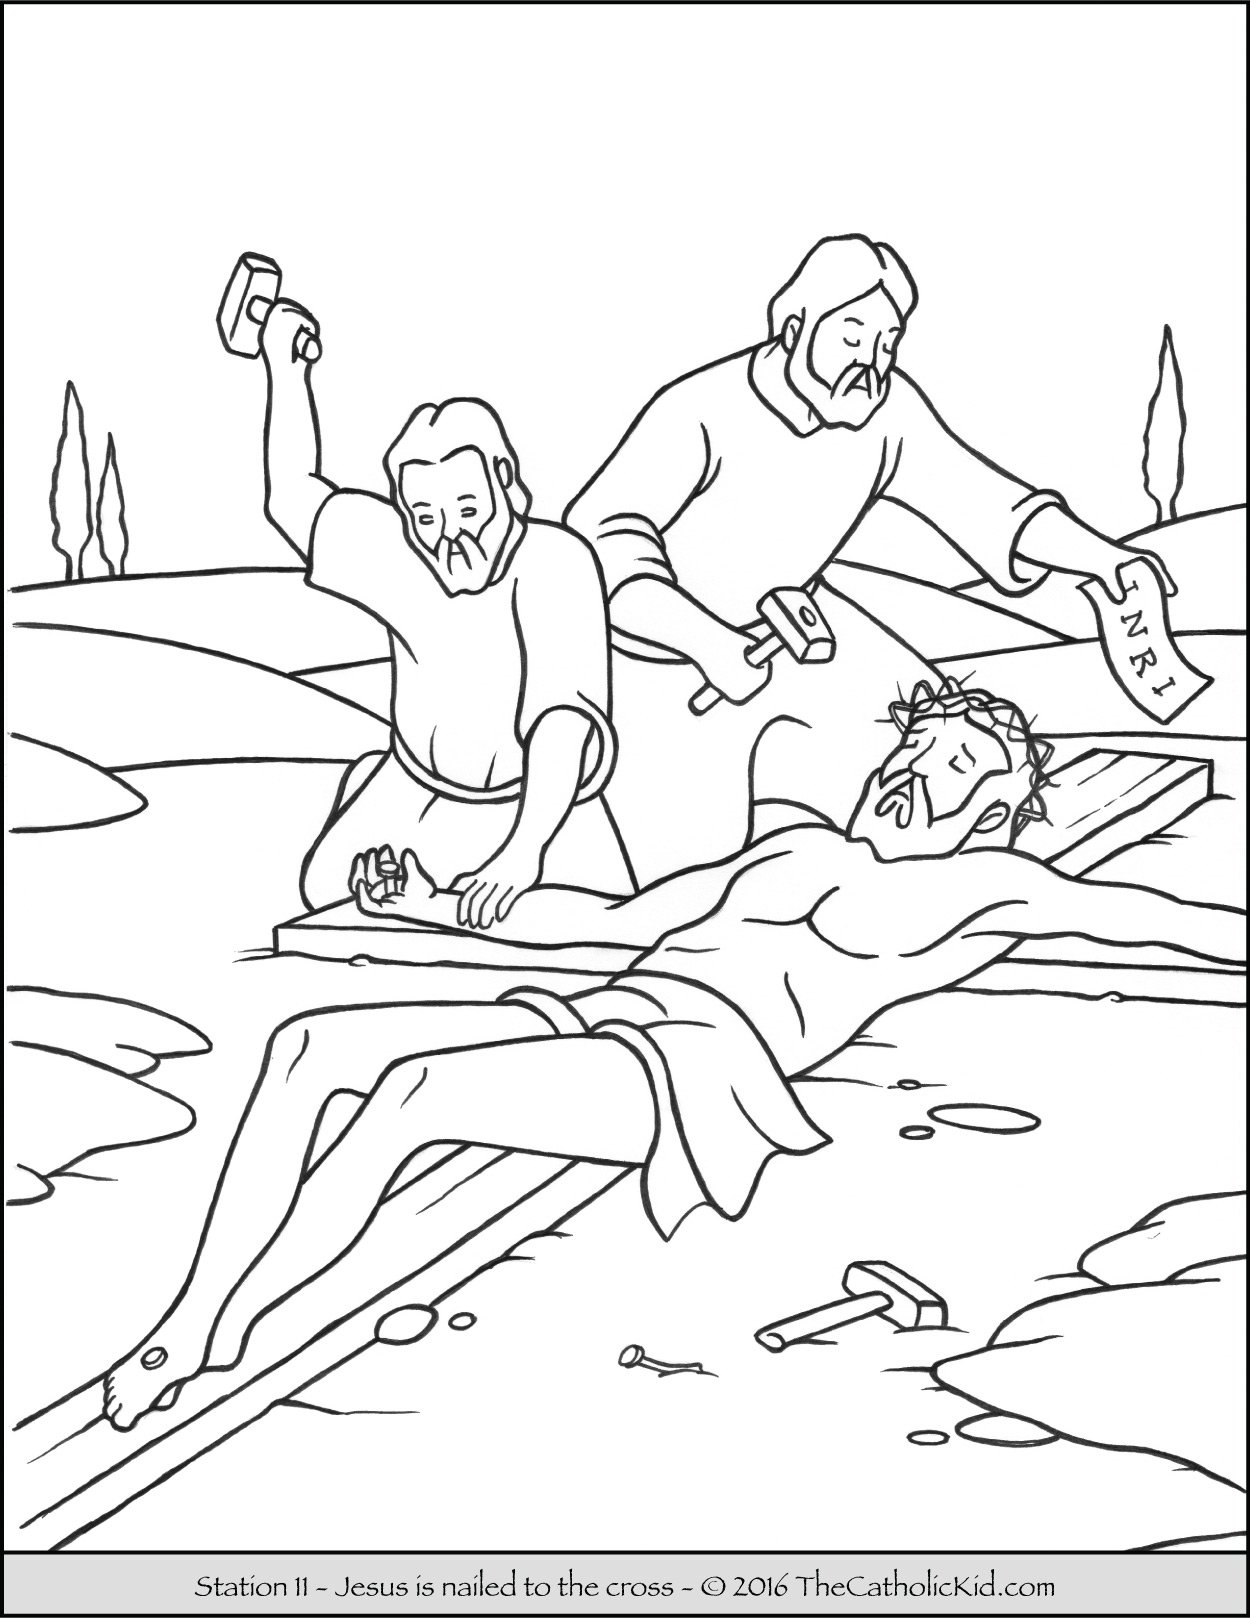 Stations Of The Cross Coloring Pages Beauteous Stations Of The Cross Coloring Pages  The Catholic Kid Design Inspiration